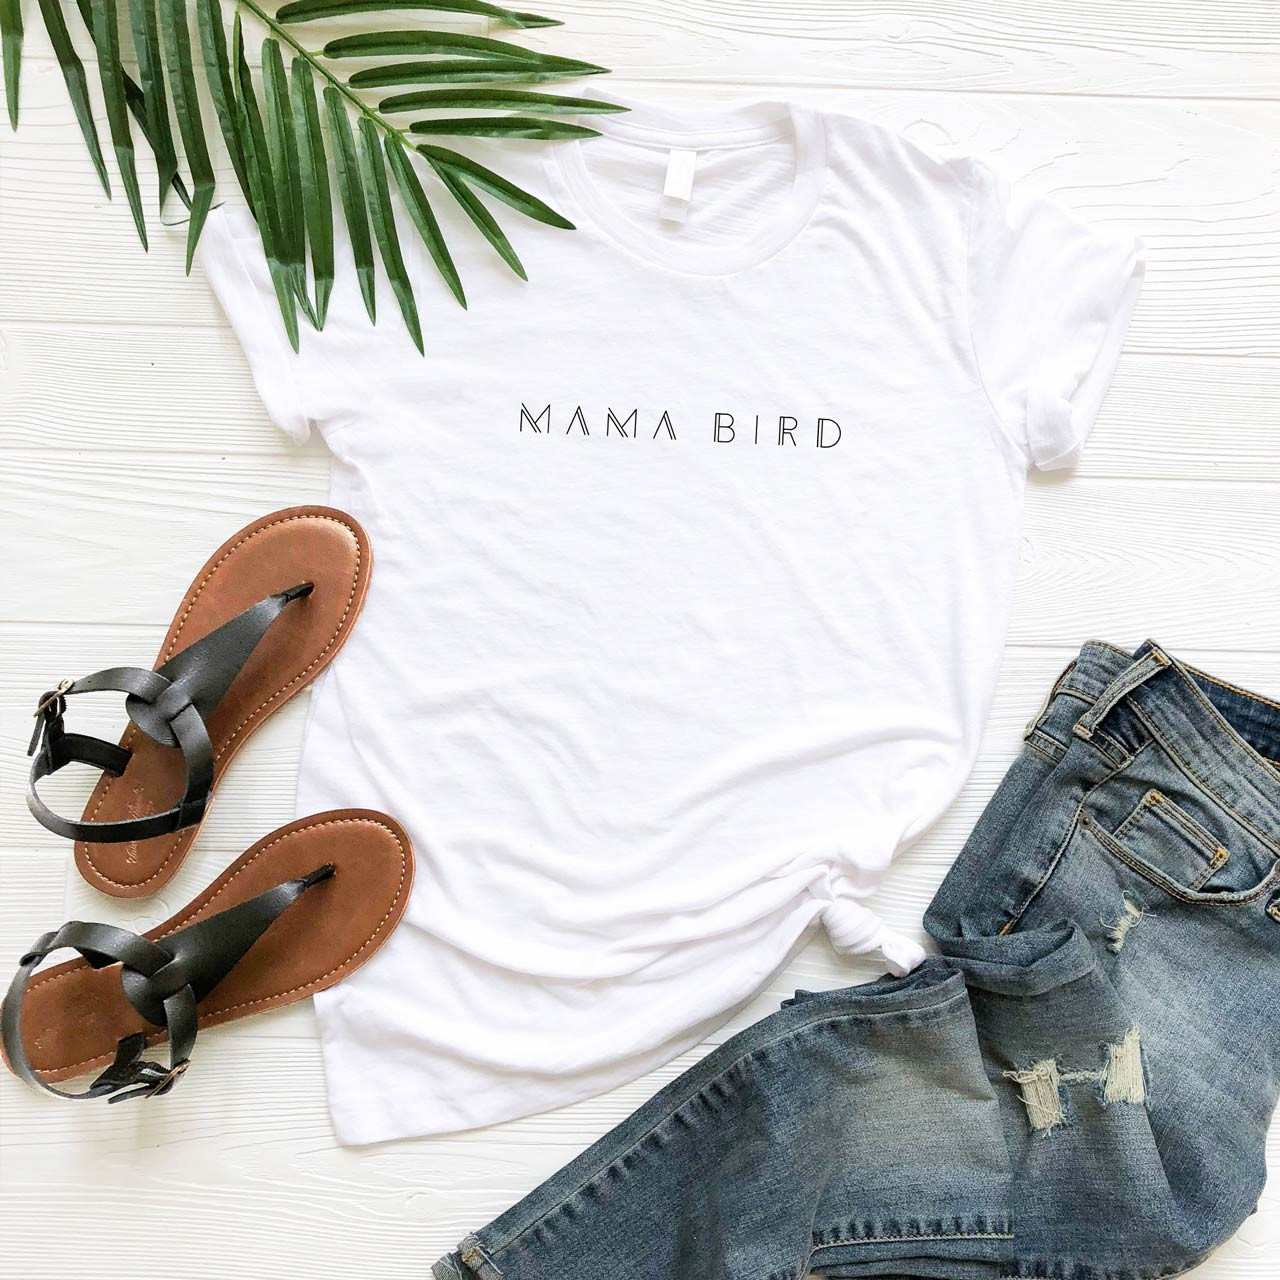 MAMA BIRD Cotton T-Shirt (Black on White) from The Printed Home